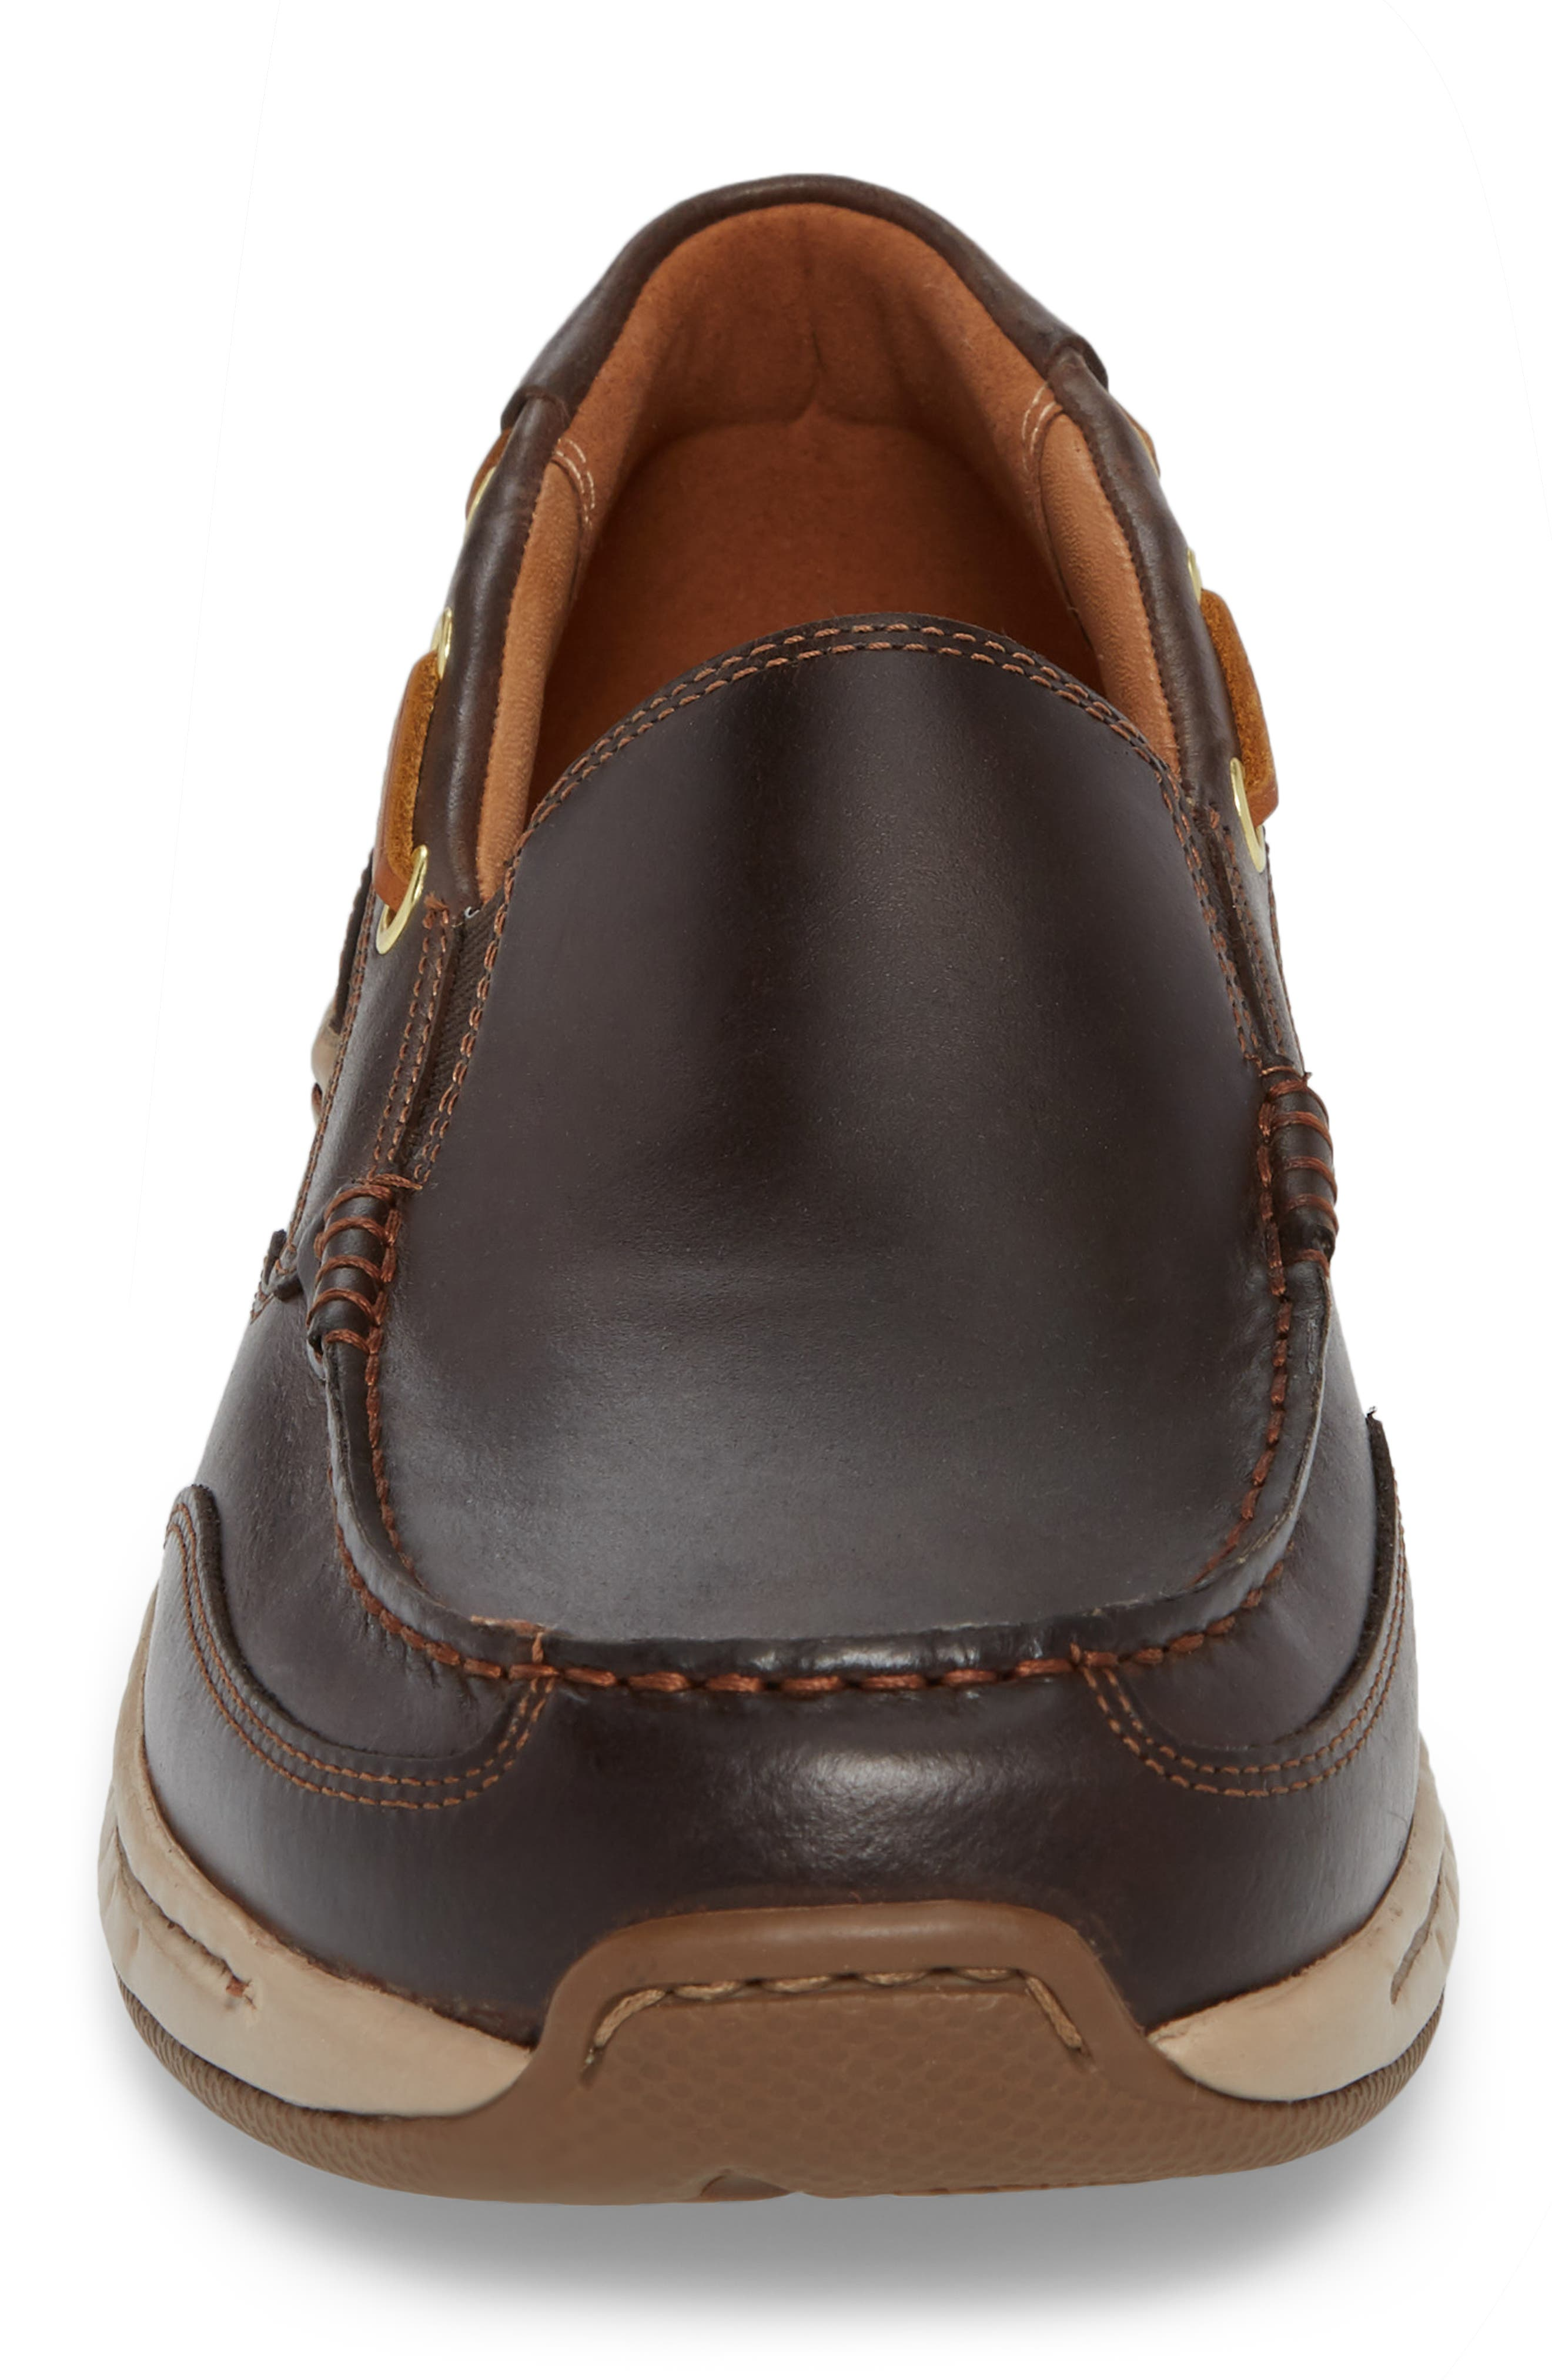 Waterford Water Resistant Slip-On,                             Alternate thumbnail 4, color,                             Tan Leather